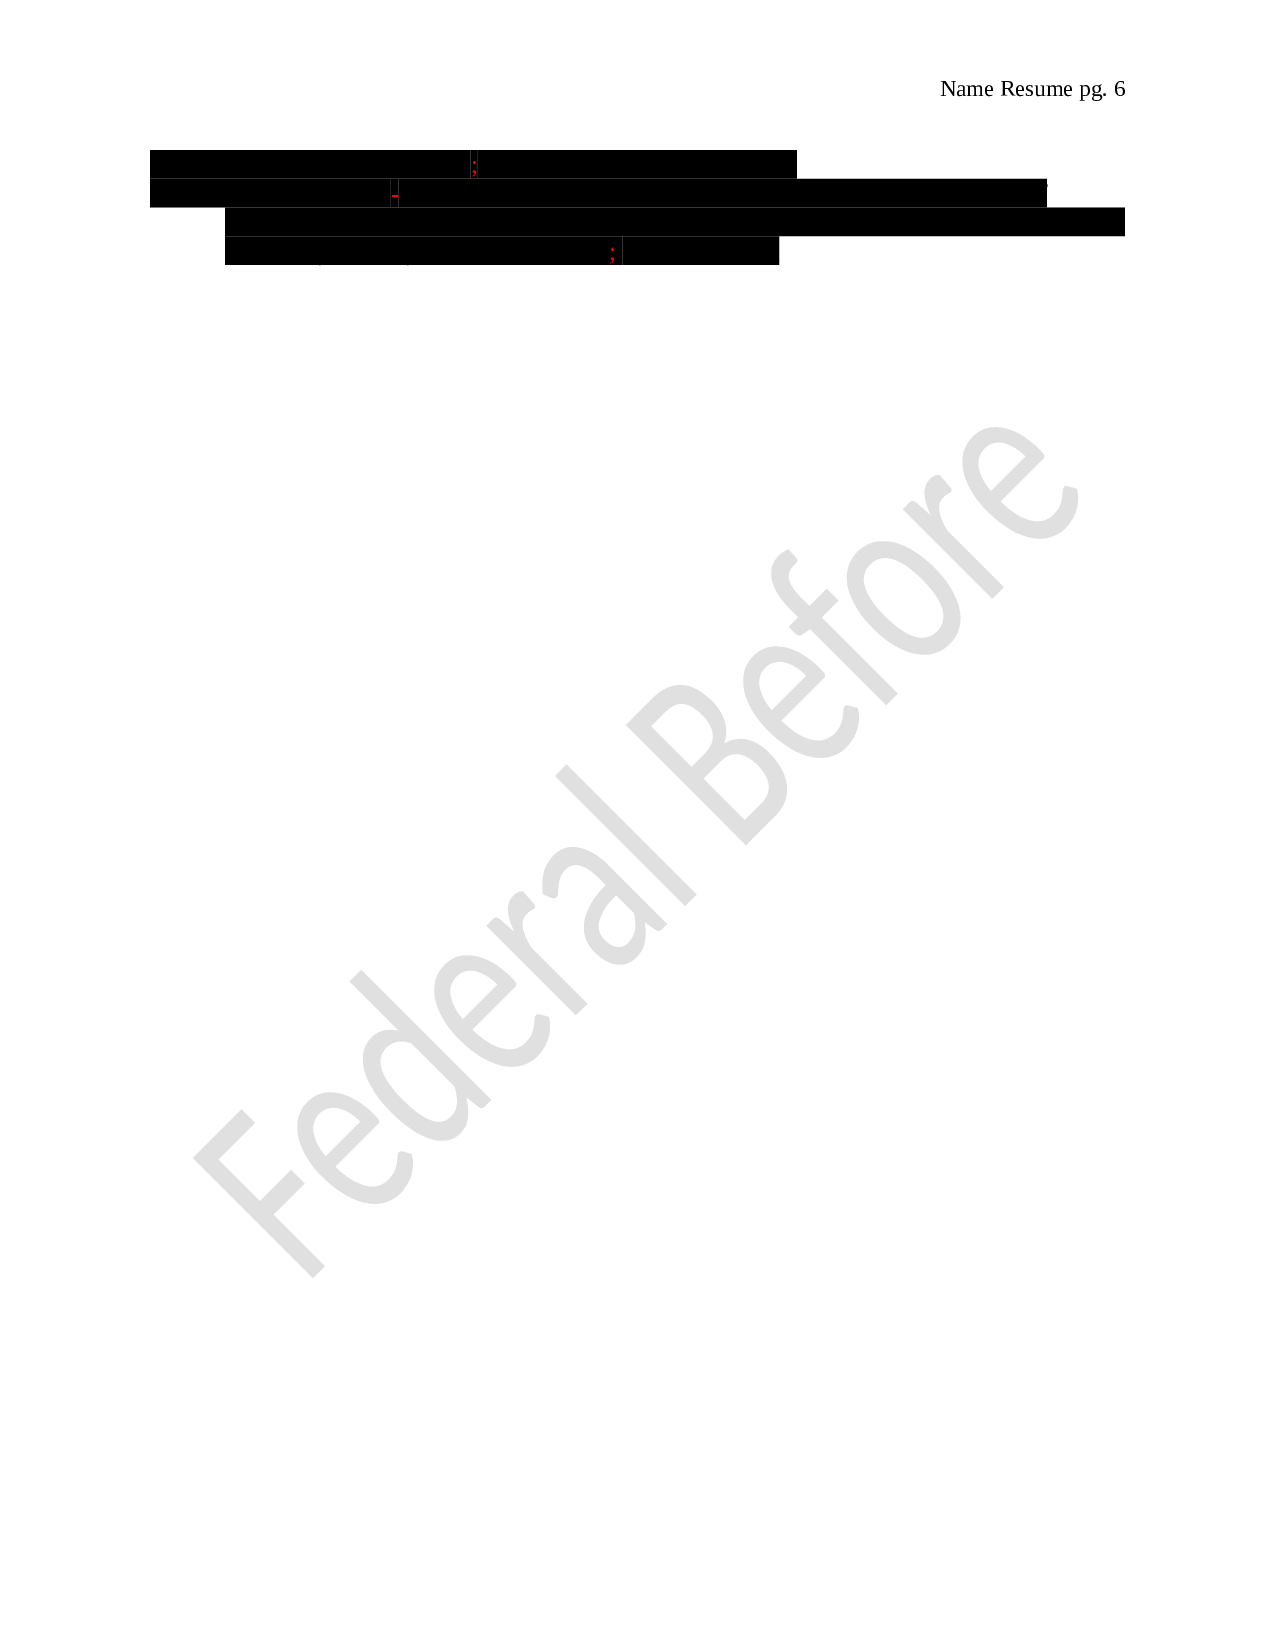 Federal Resume Before Page 6